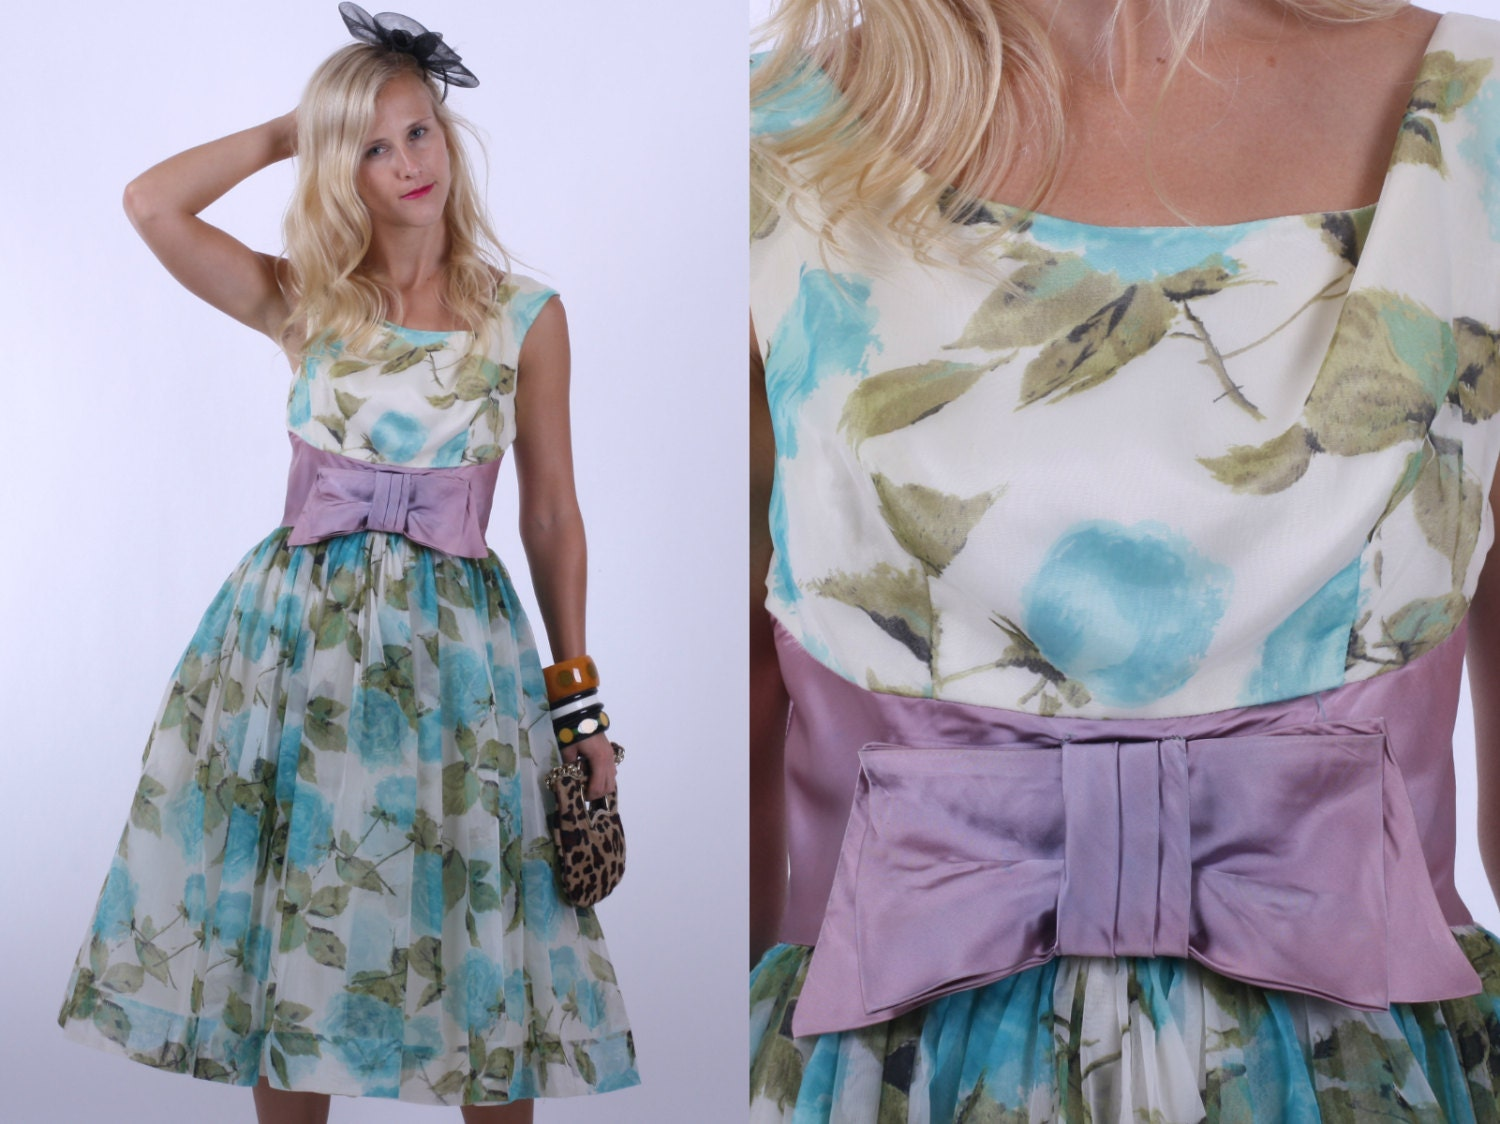 Vintage 50s Dress / 1950s Prom Dress / Turquoise and Green Floral Party Dress w/ Shelf Bust S